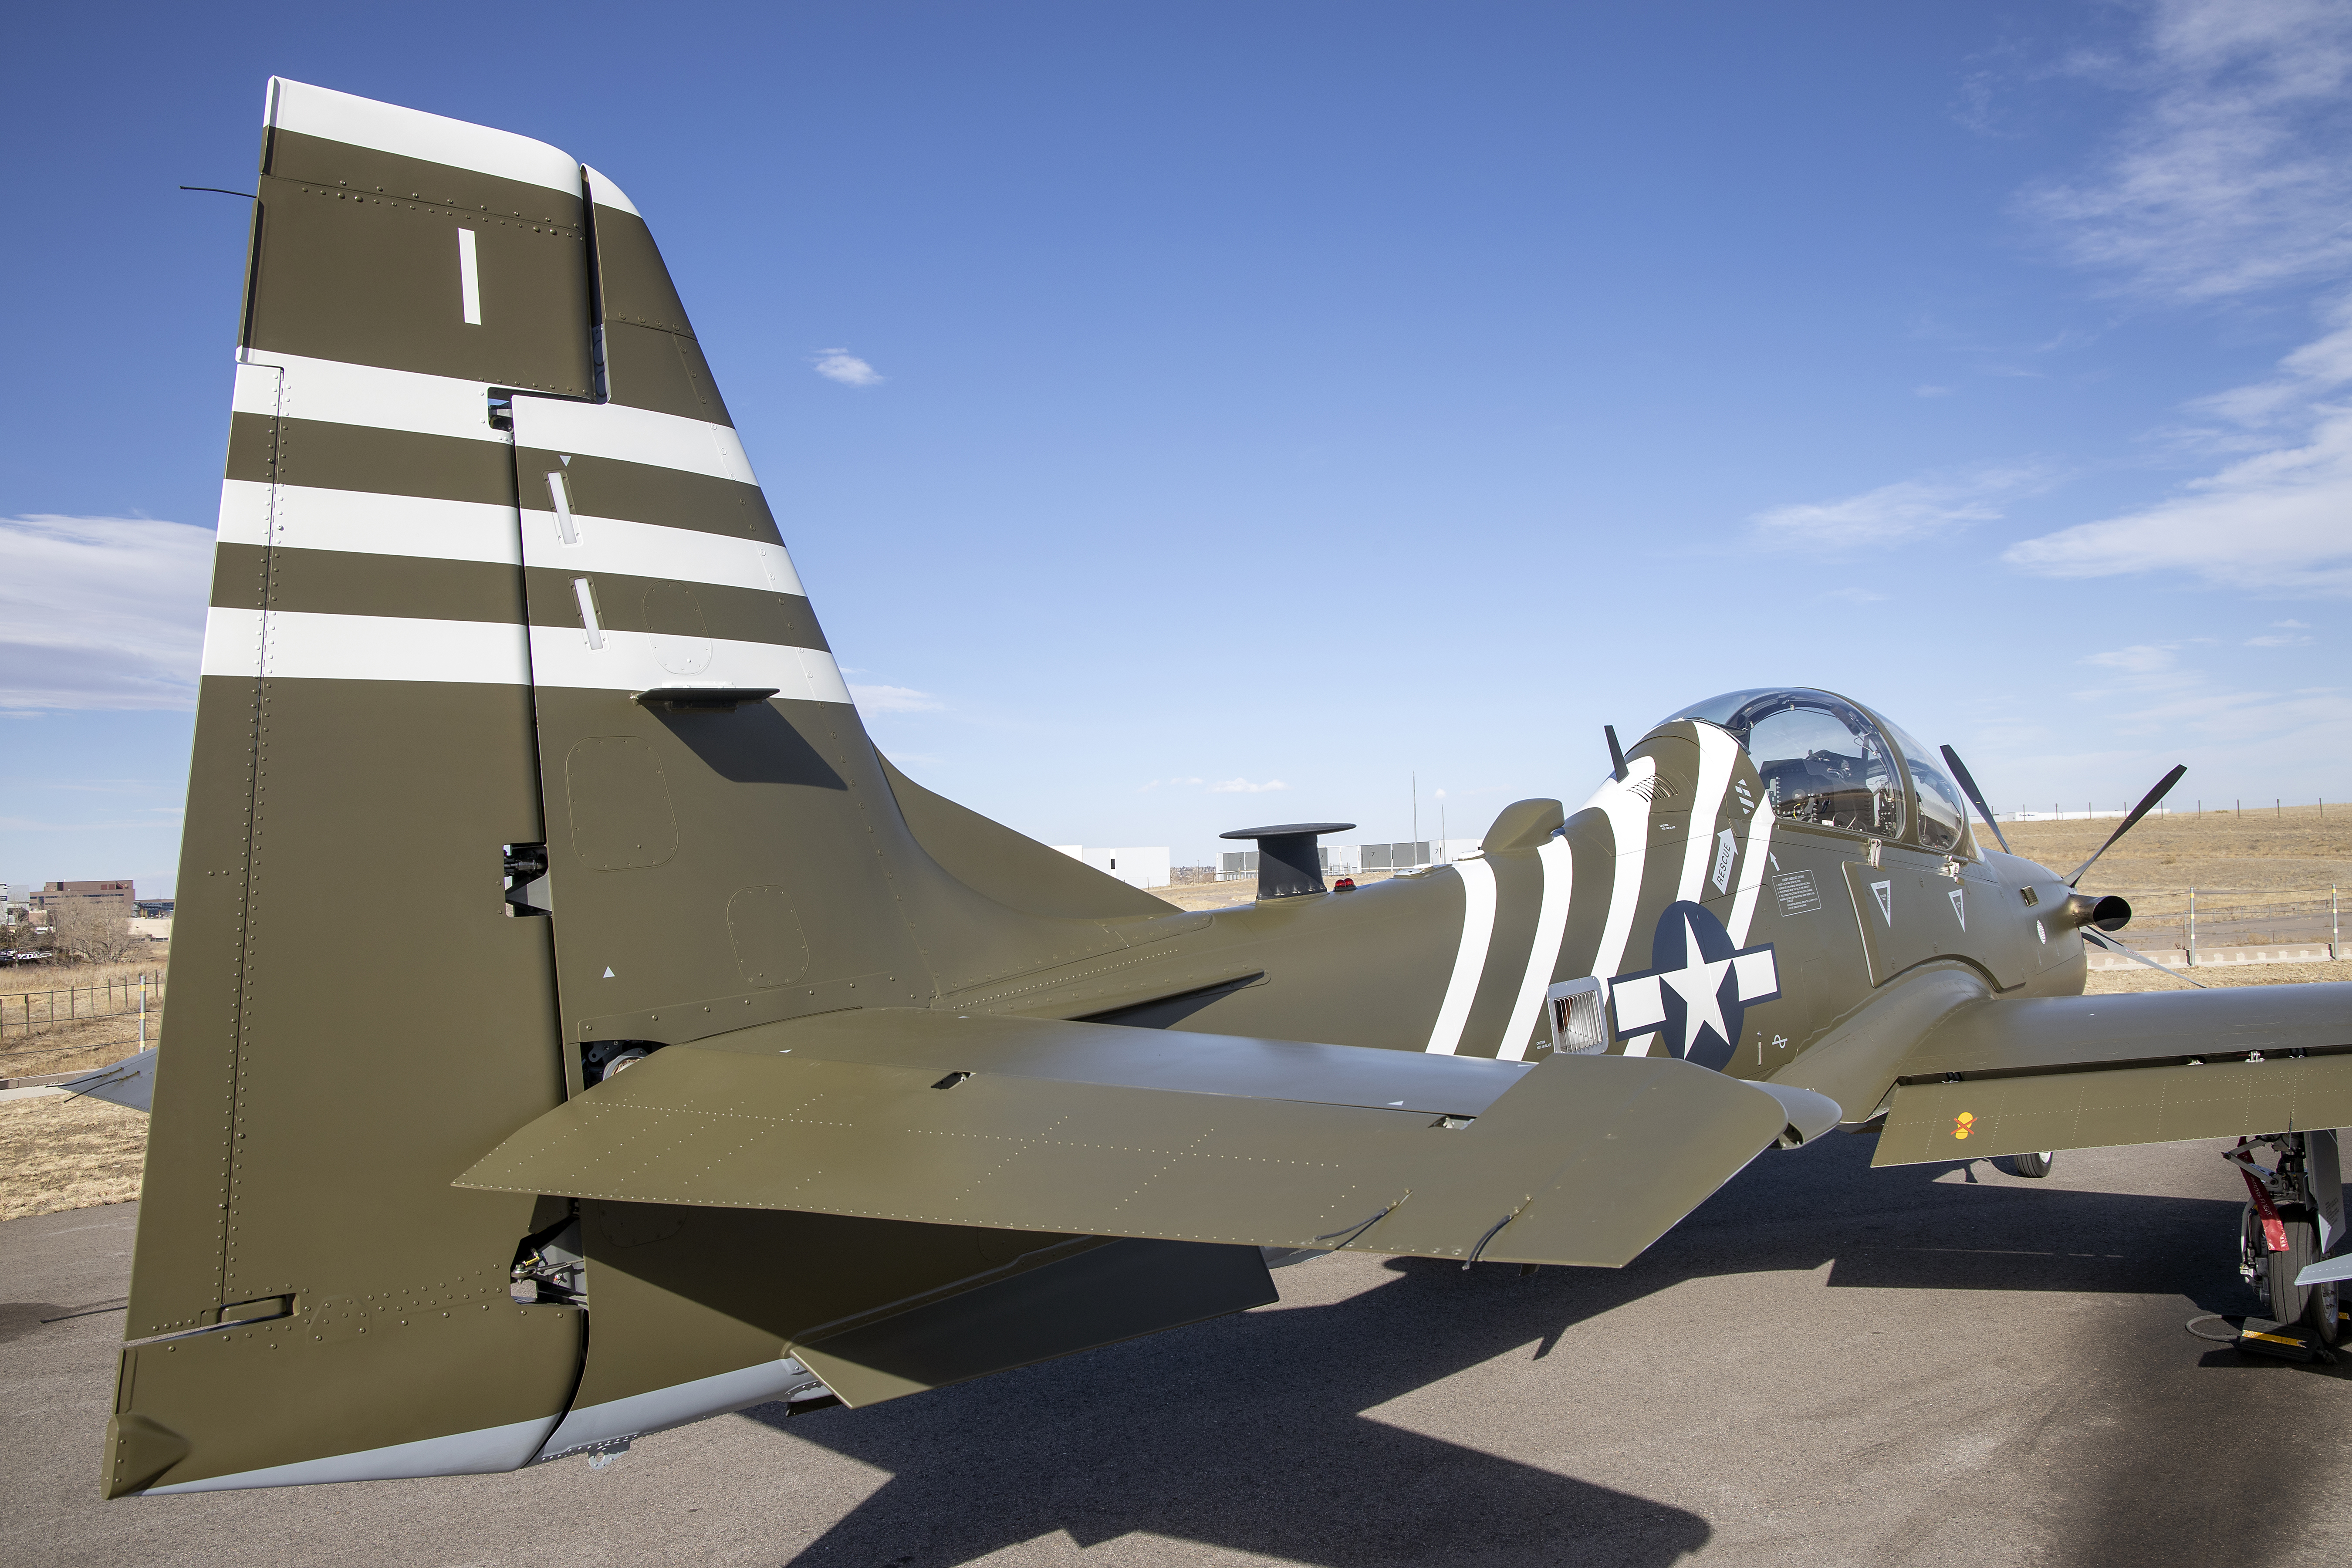 AFSOCS NEWEST A-29 LIGHT ATTACK AIRCRAFT CLOSER TO FINAL DELIVERY